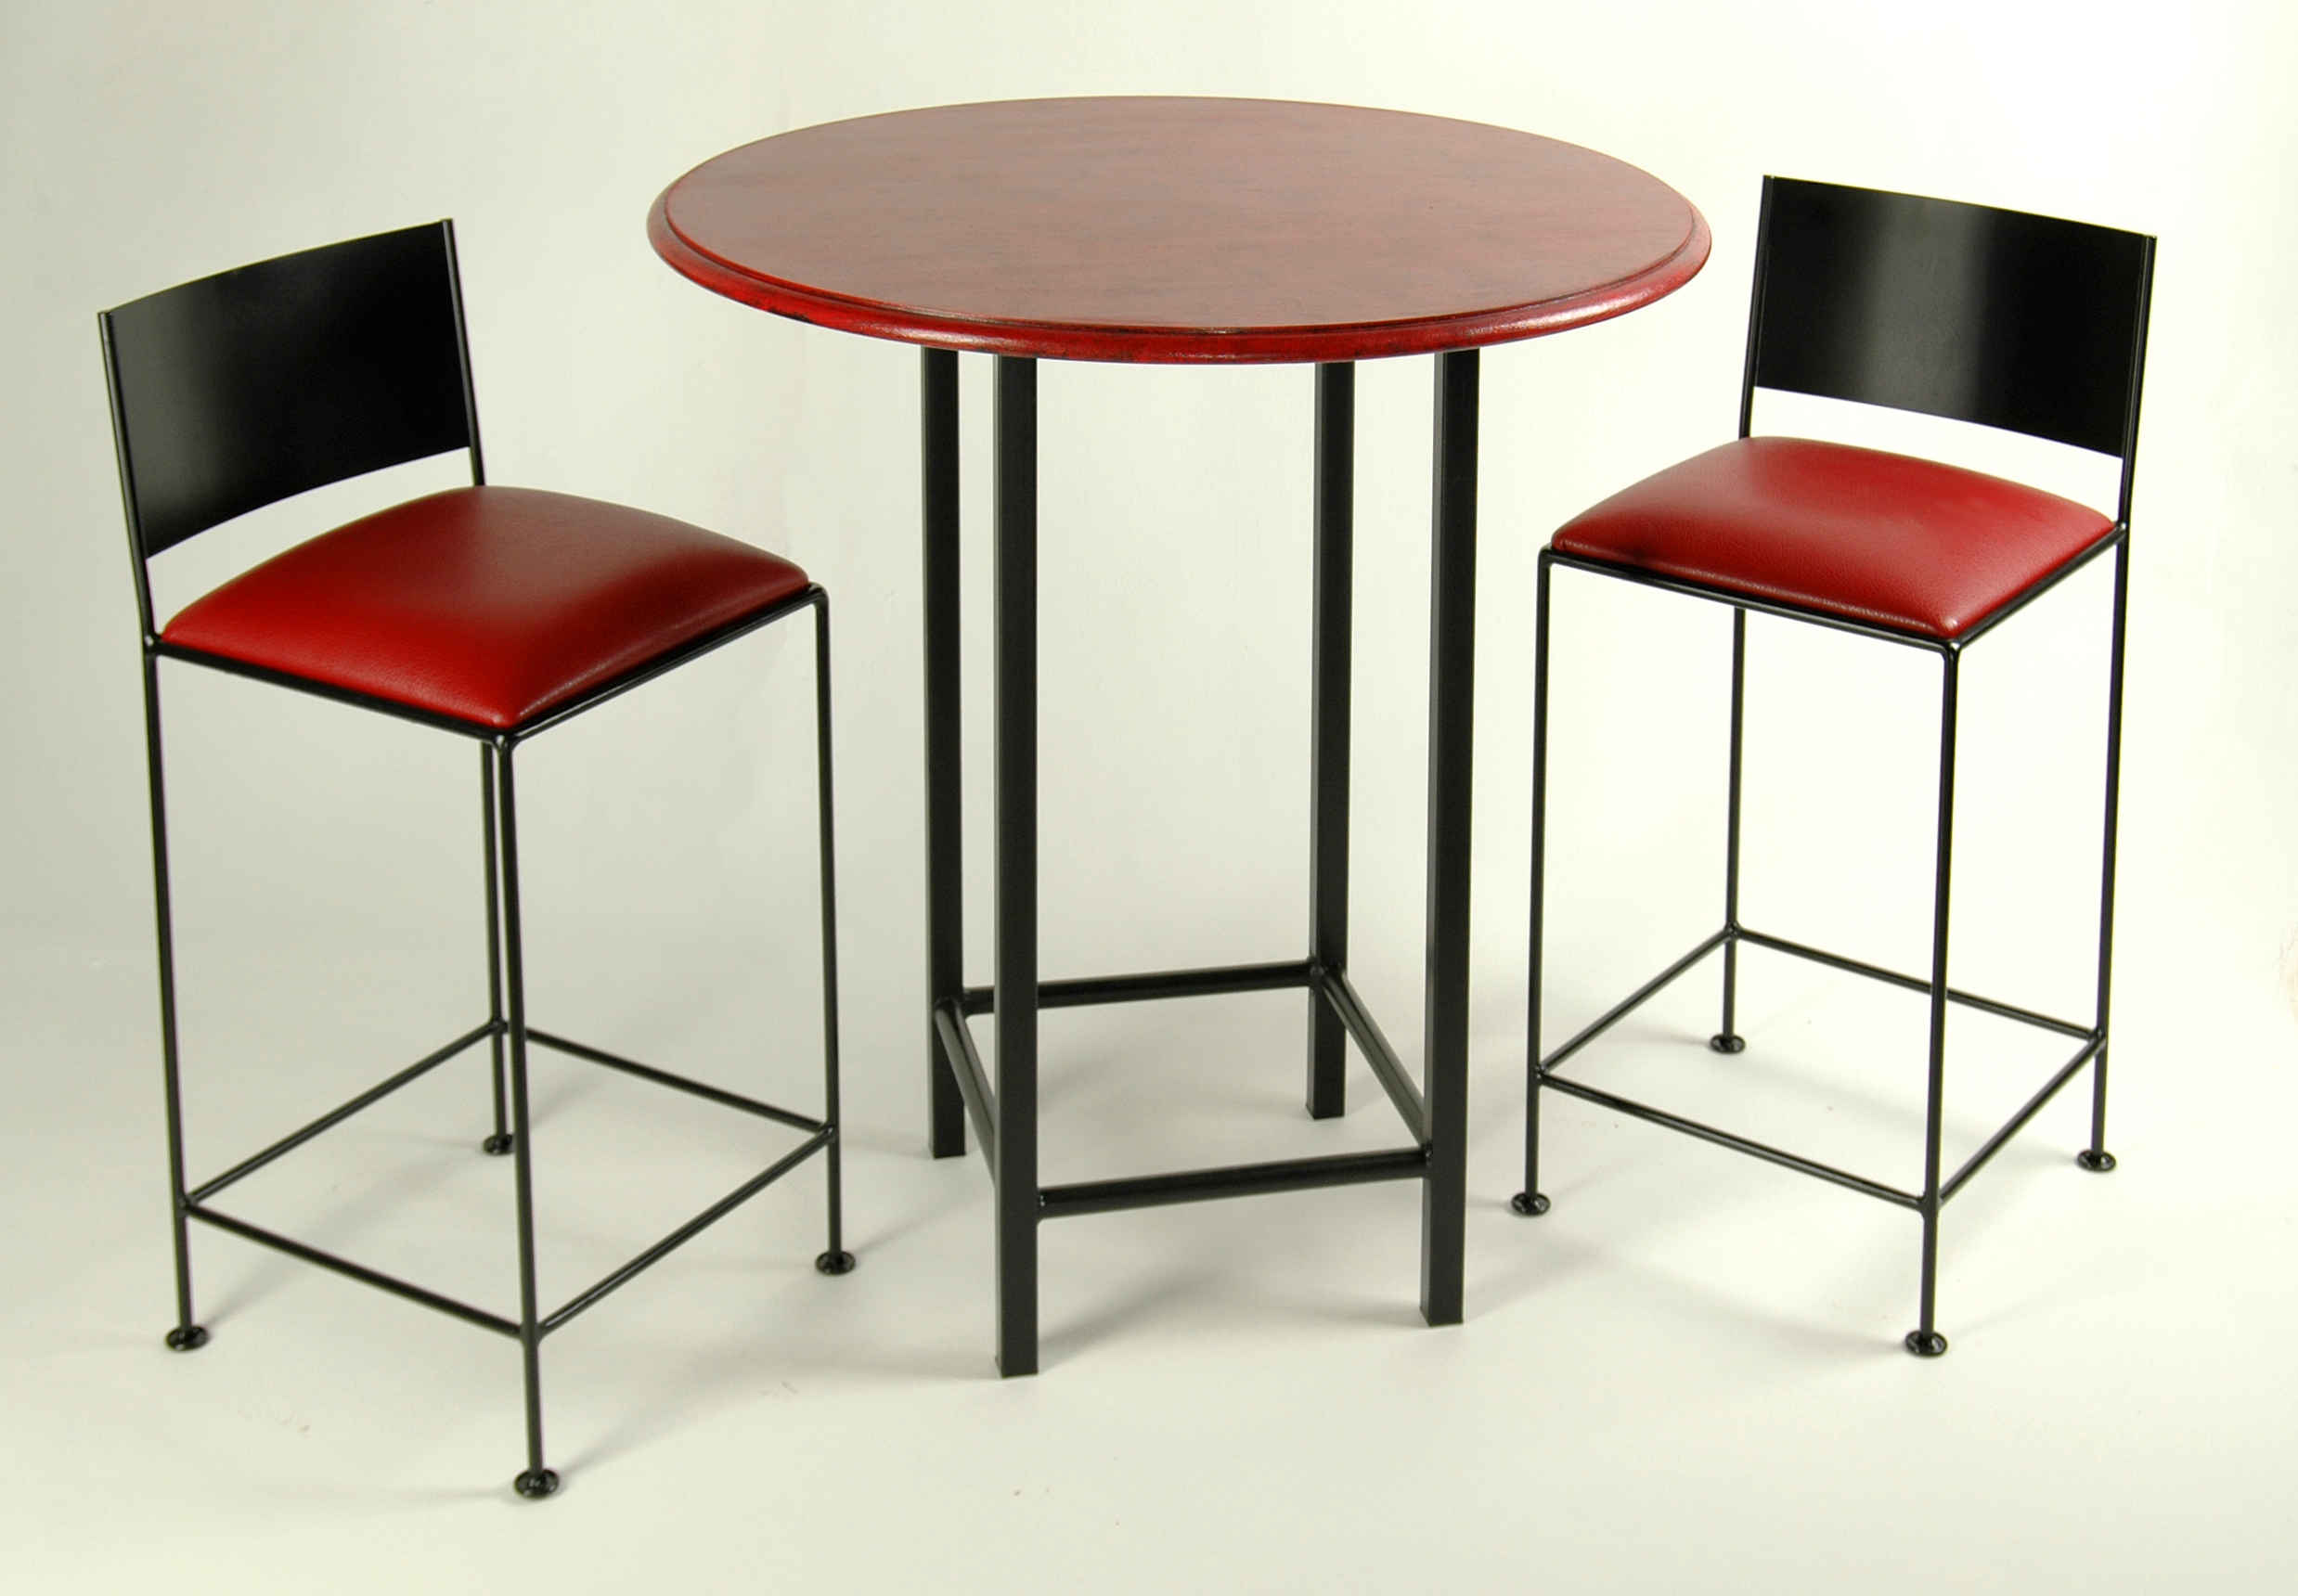 Stupendous Tall Bar Tables Wrought Iron Onthecornerstone Fun Painted Chair Ideas Images Onthecornerstoneorg